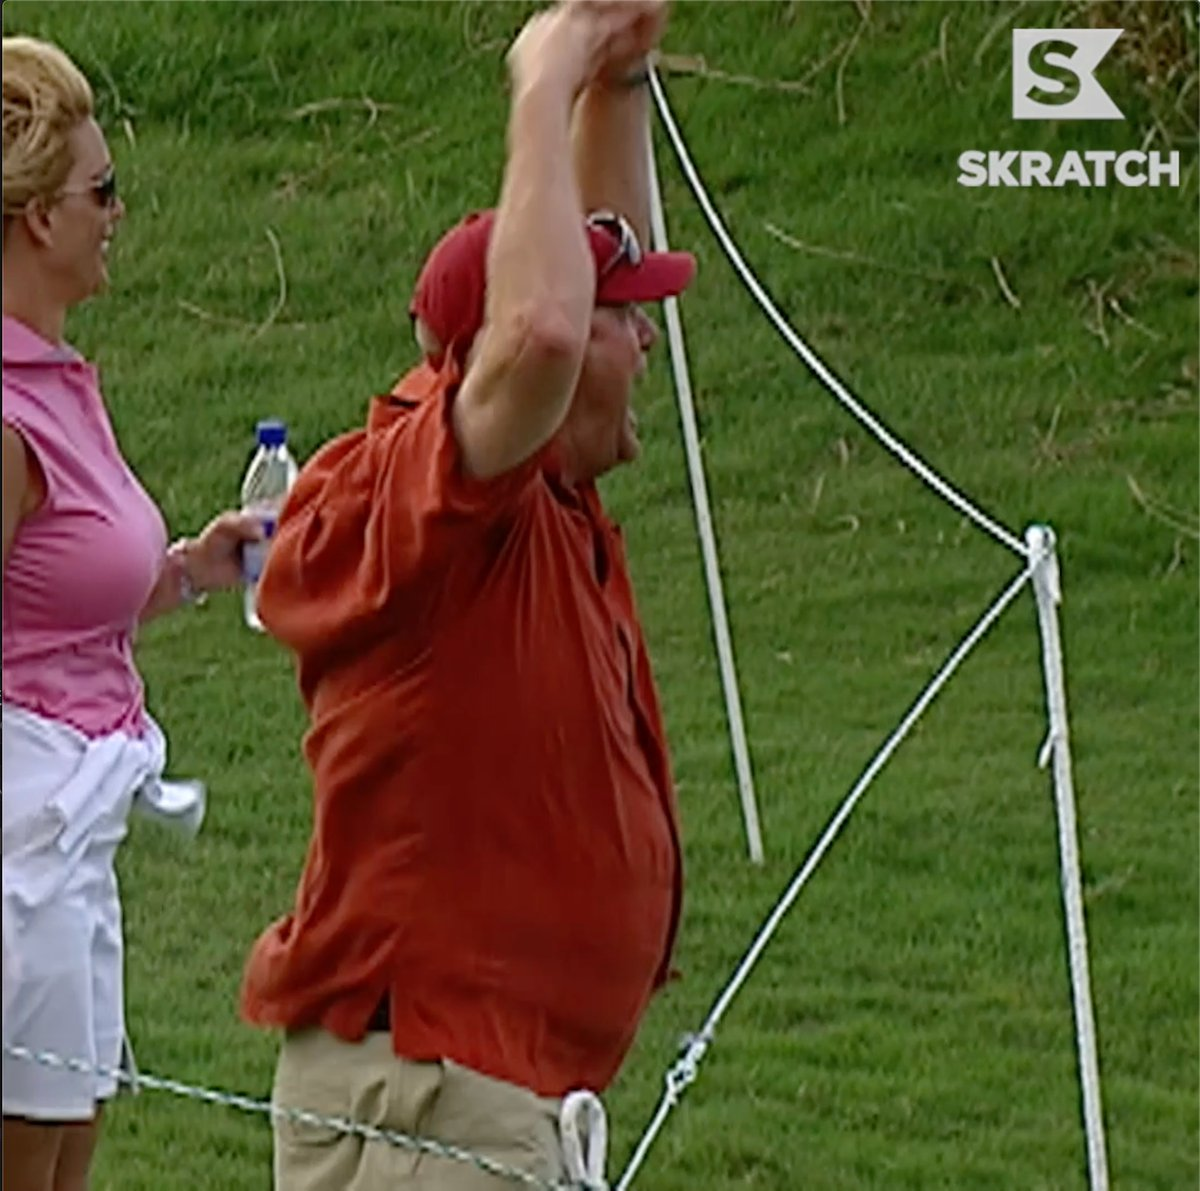 We've never heard anyone this excited about a golf shot.